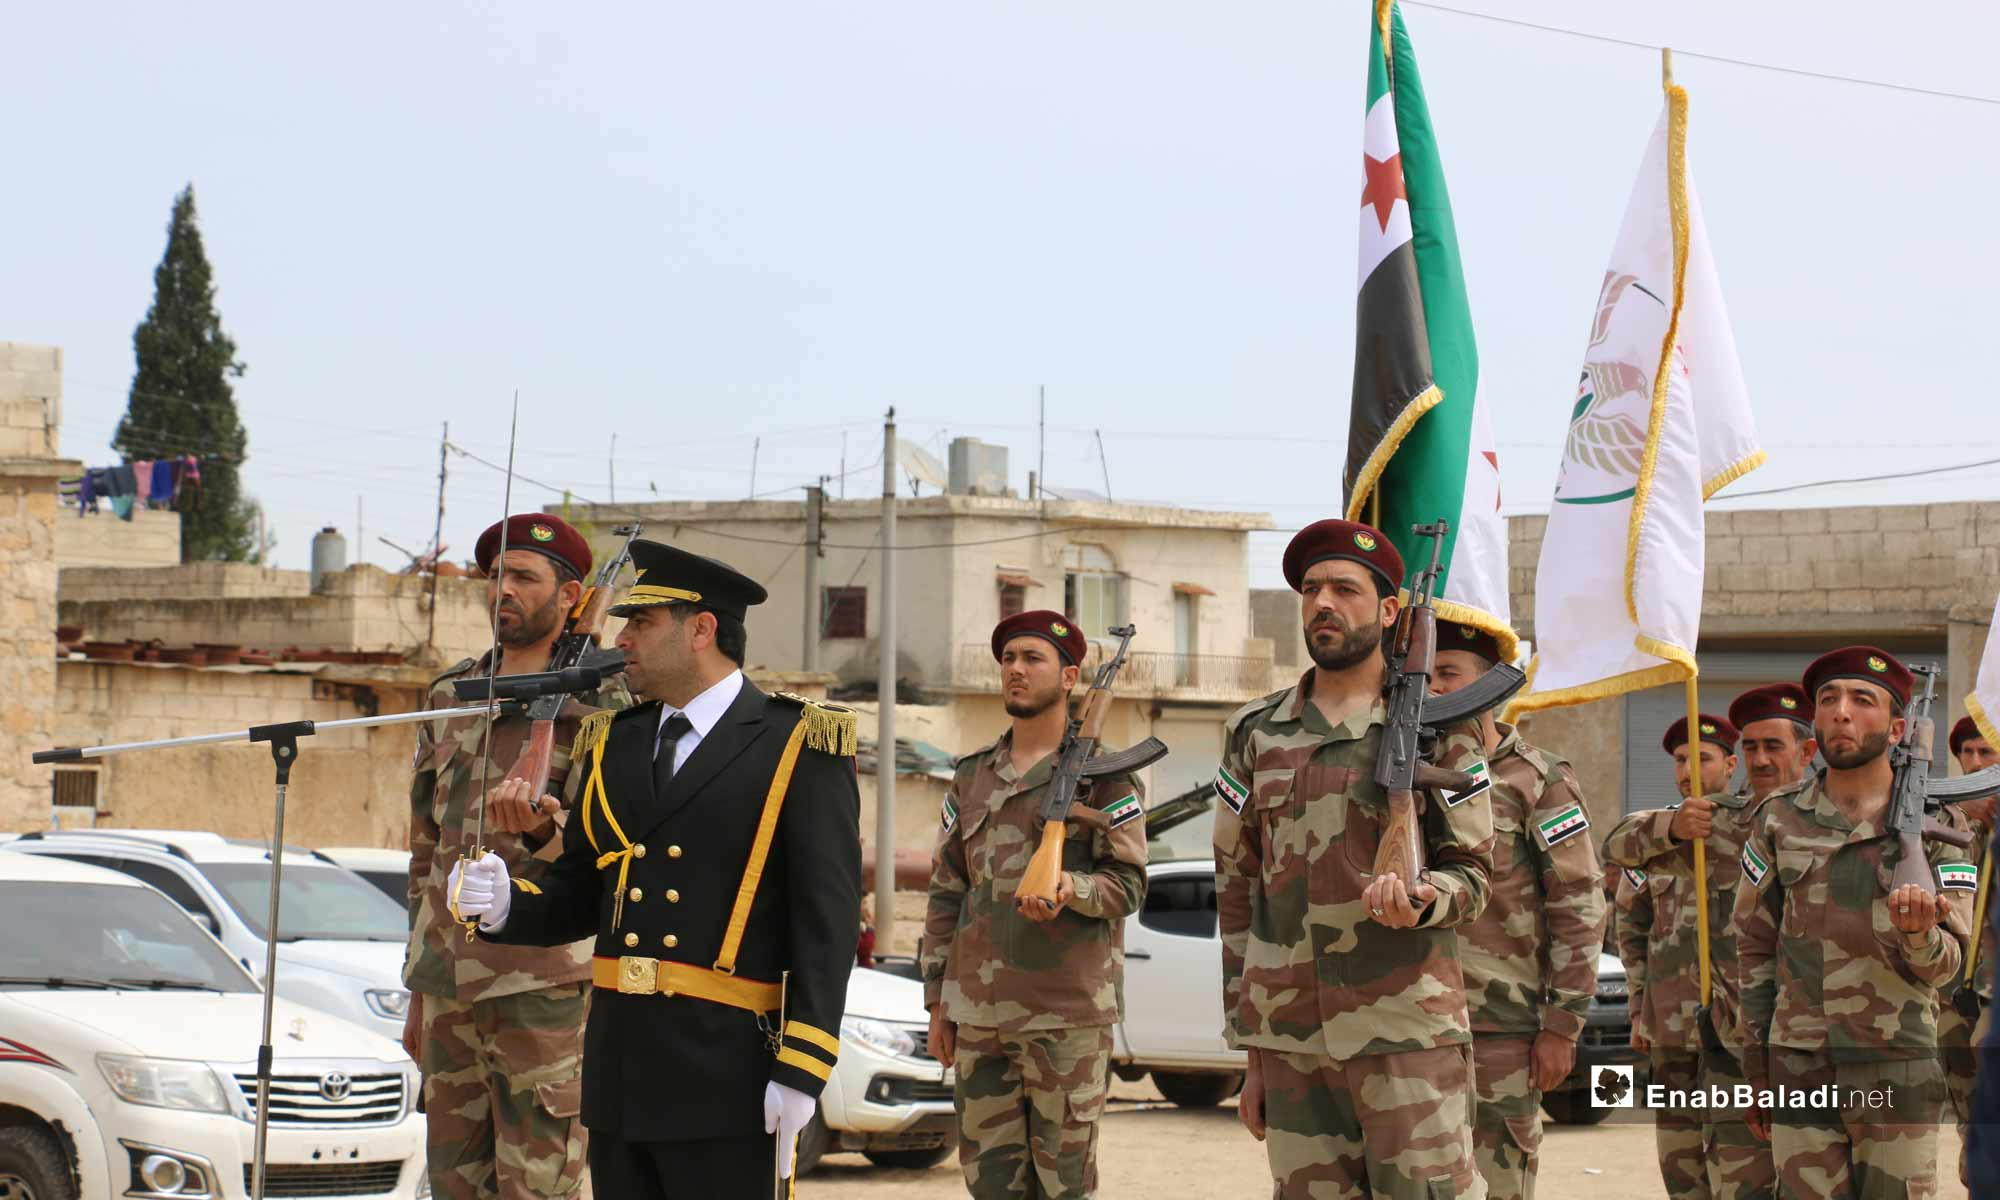 The celebration of opening the first office of the National Coalition for Syrian Revolutionary and Opposition Forces in rural Aleppo – April 24, 2019 (Enab Baladi)